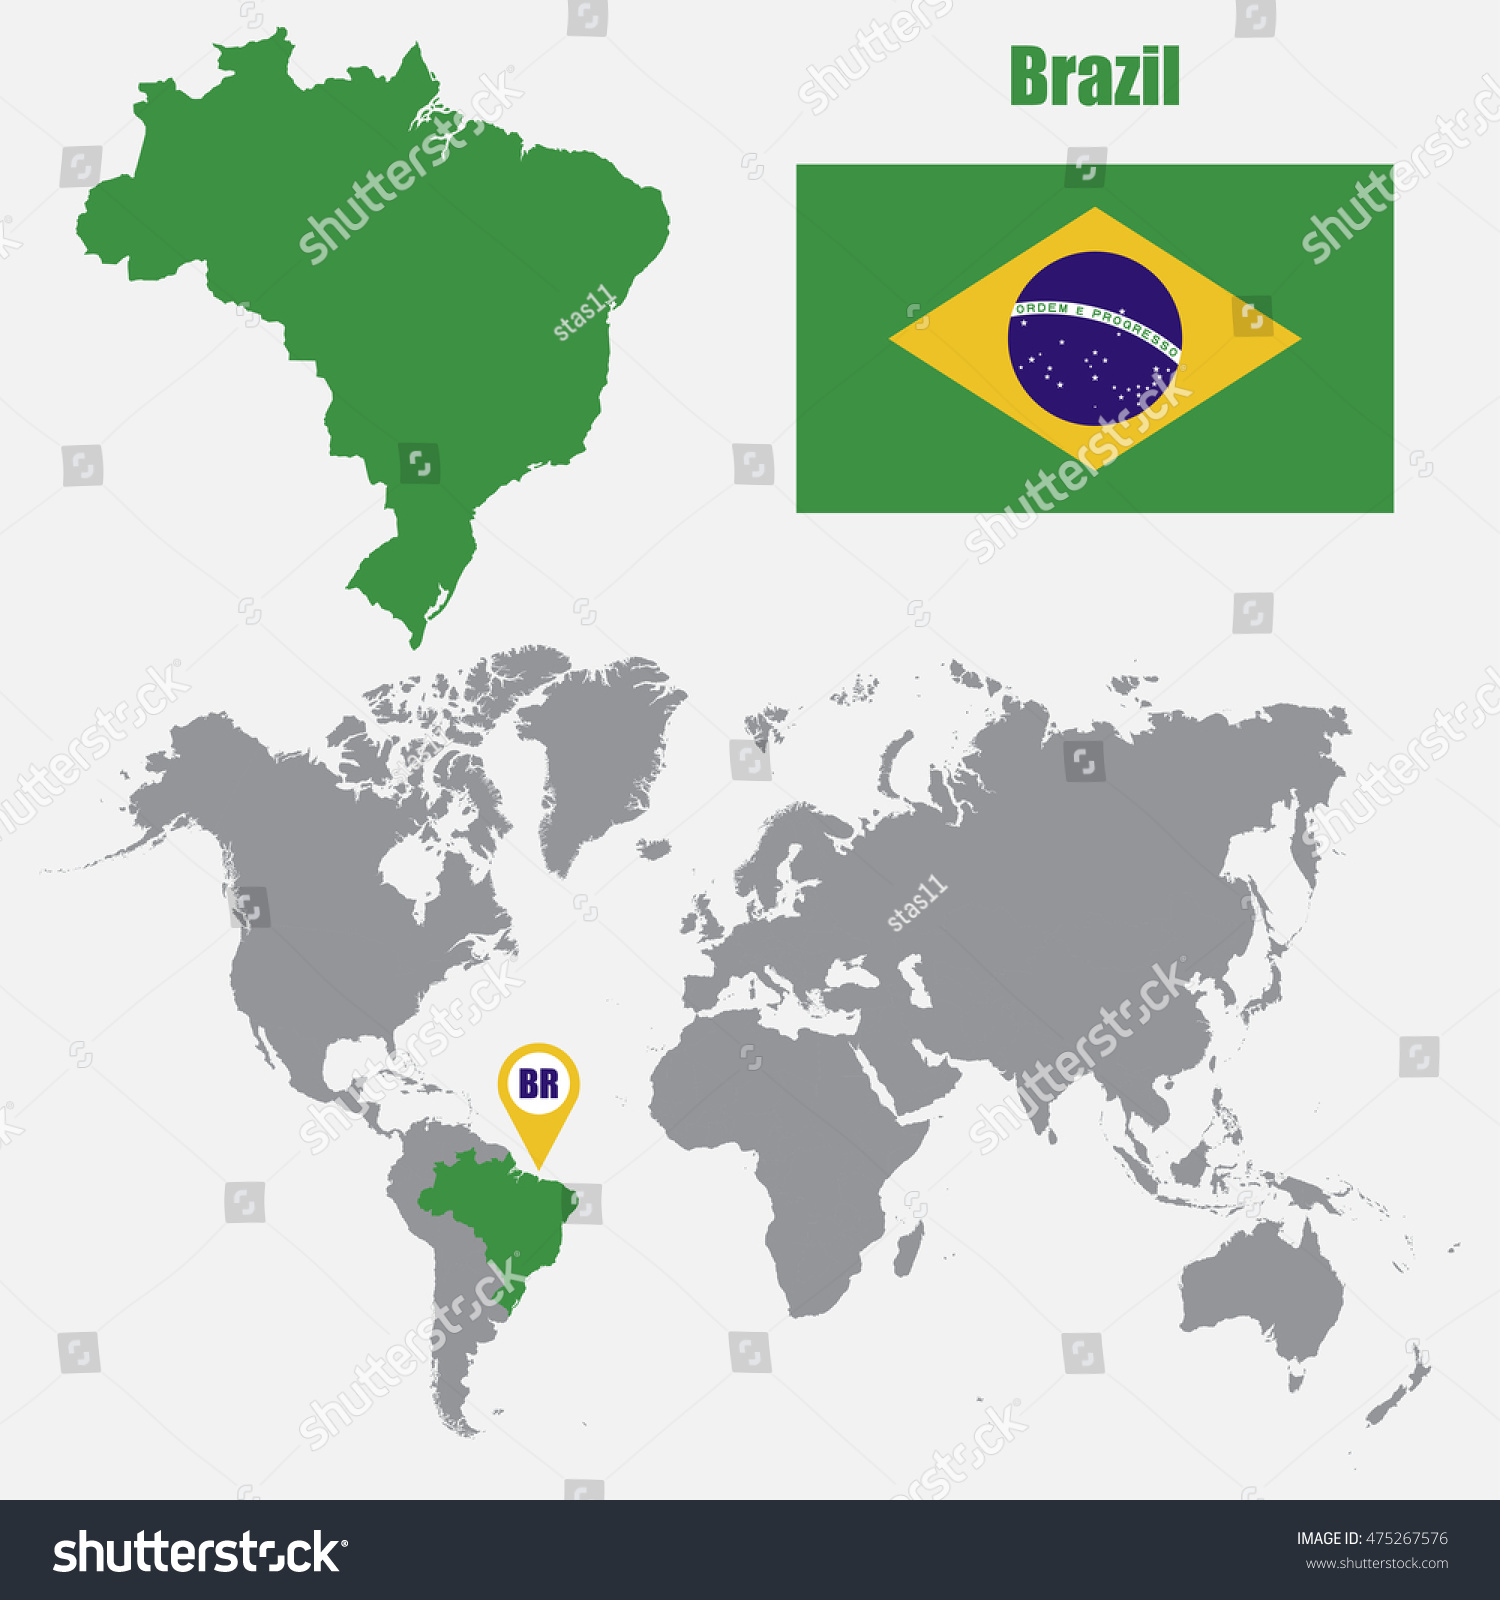 brazil map on a world map with flag and map pointer vector illustration